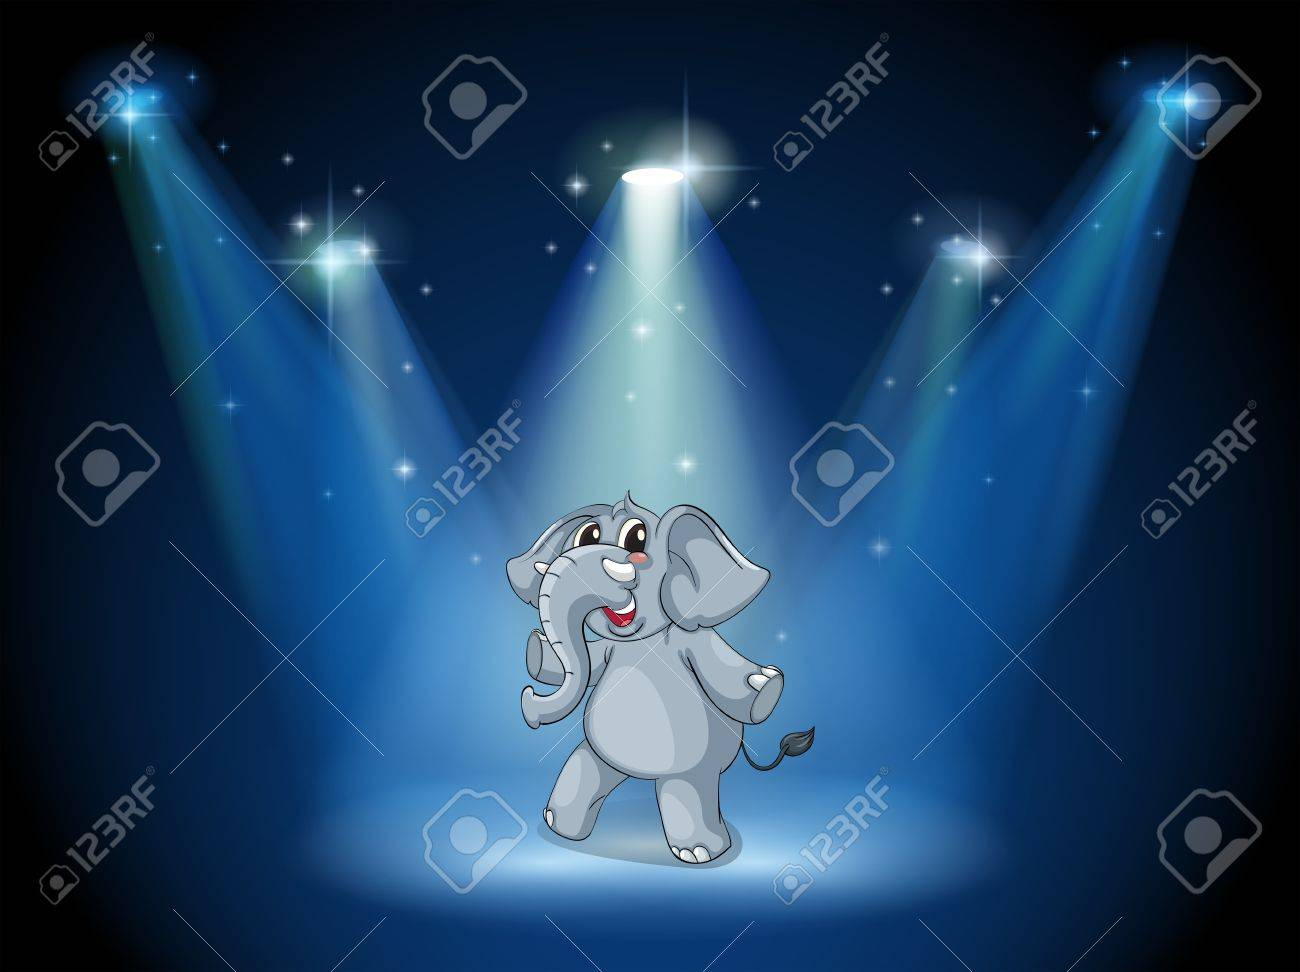 Illustration of an elephant dancing in the middle of the stage Stock Vector - 19873957